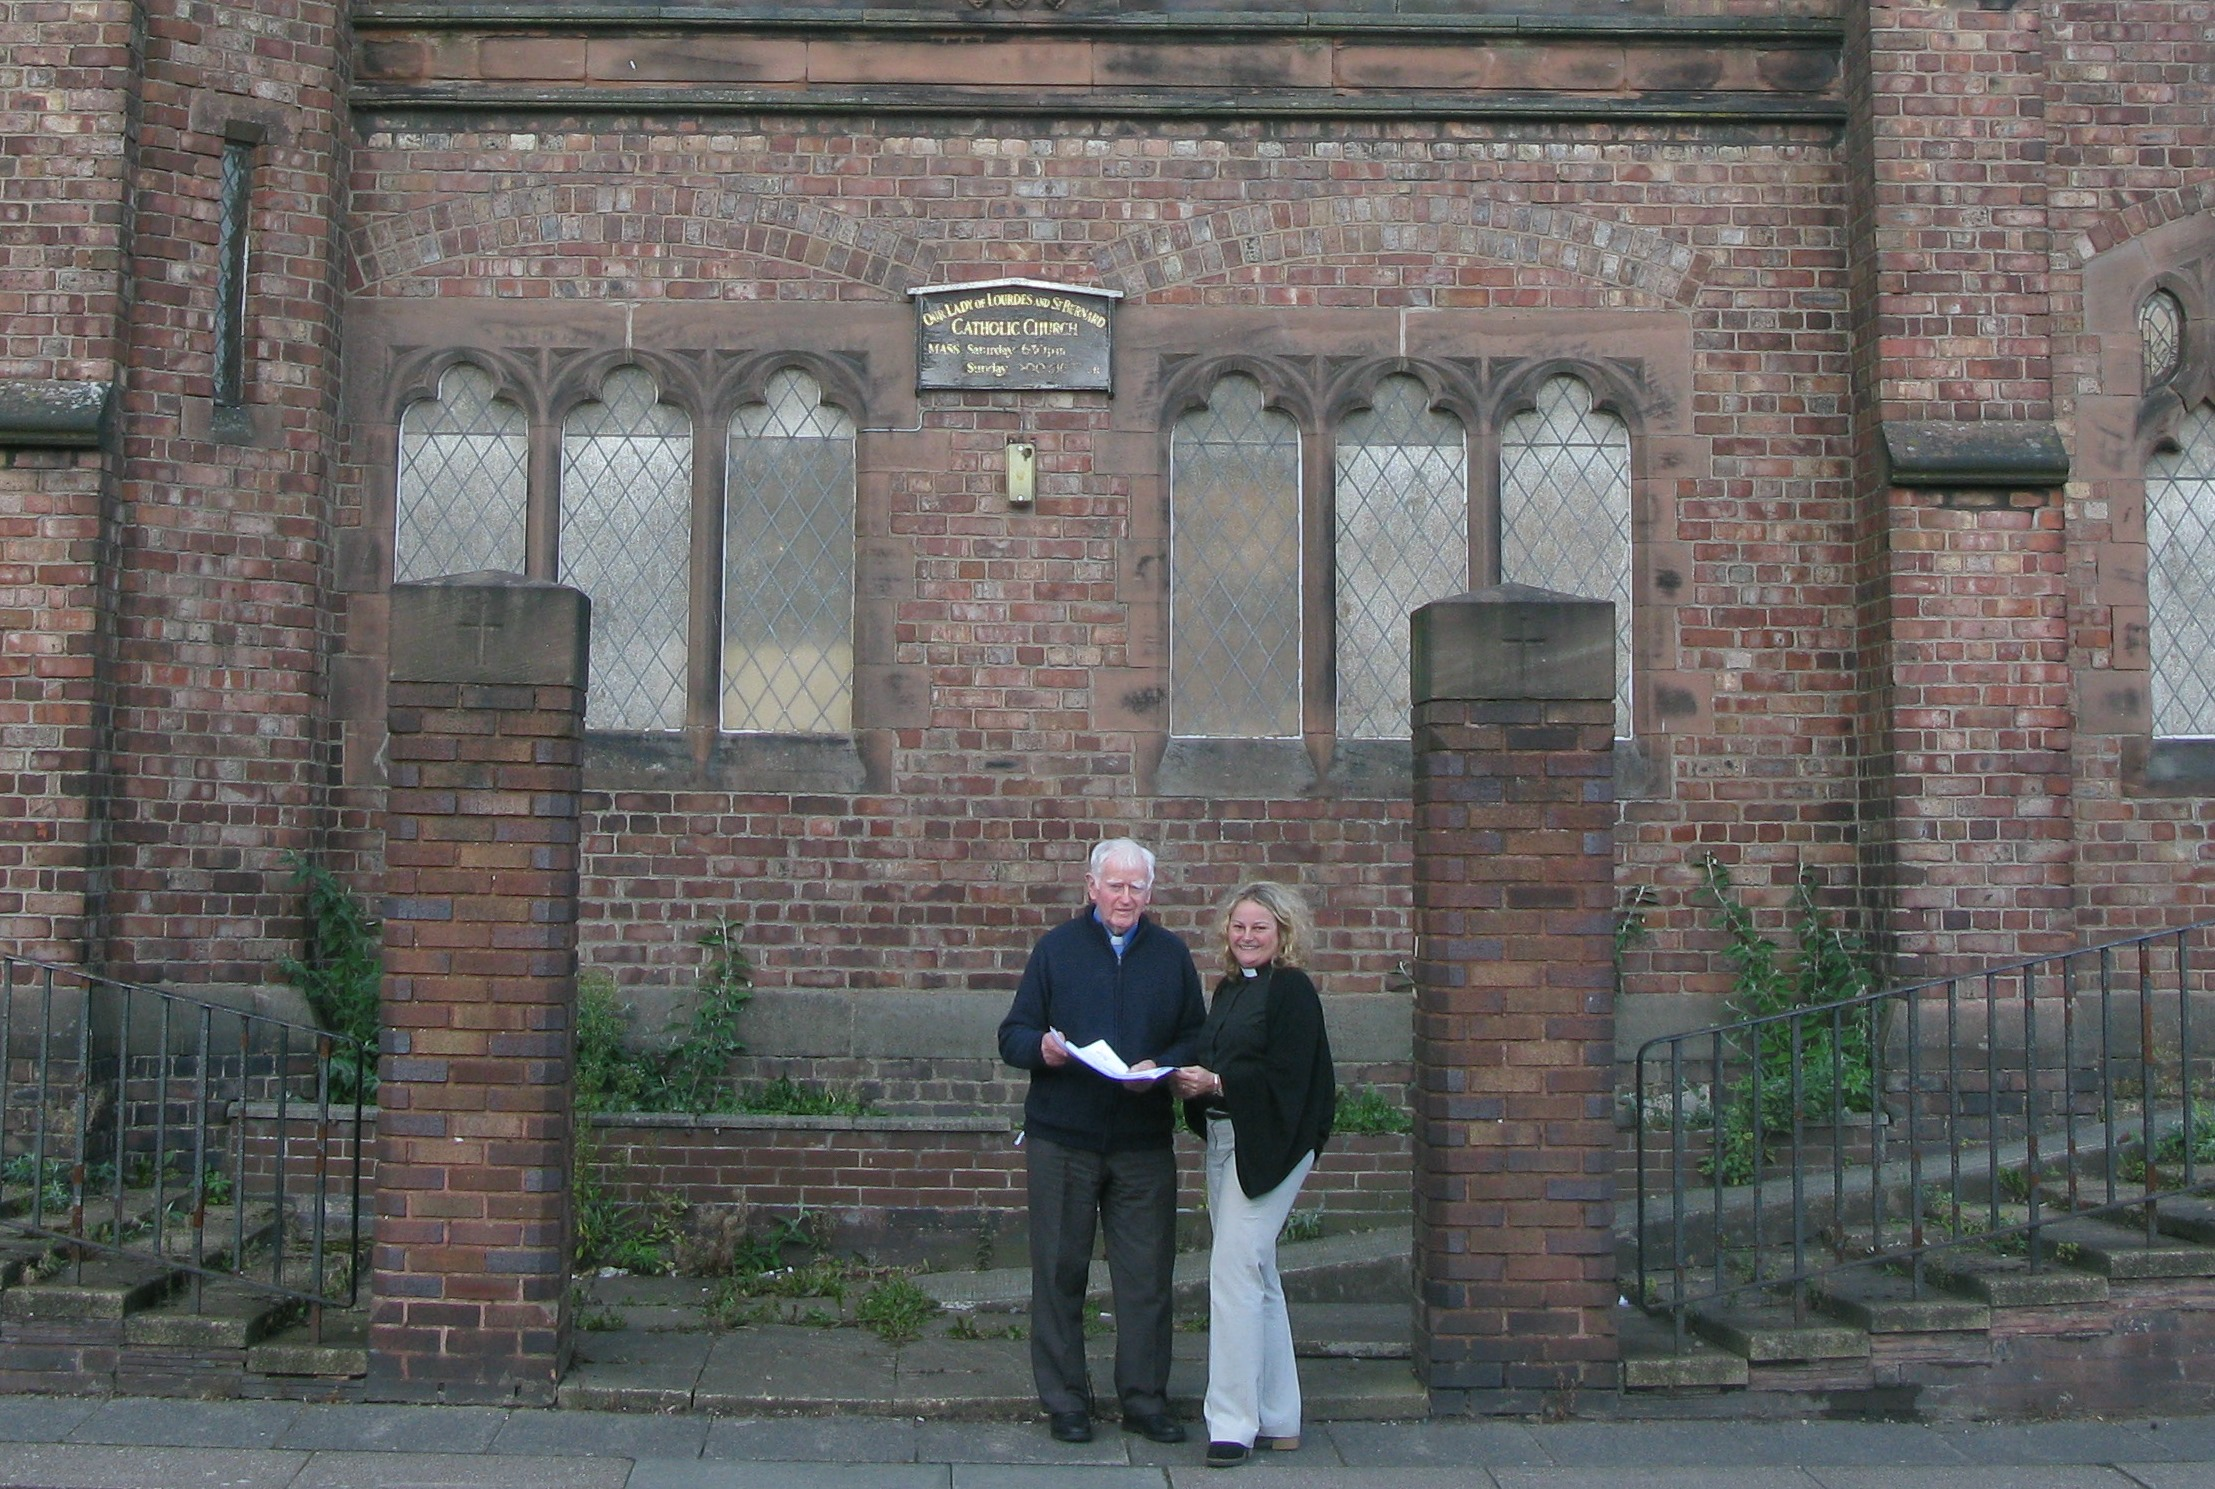 Father Peter Morgan and HPBC chair Shannon Ledbetter review the plans